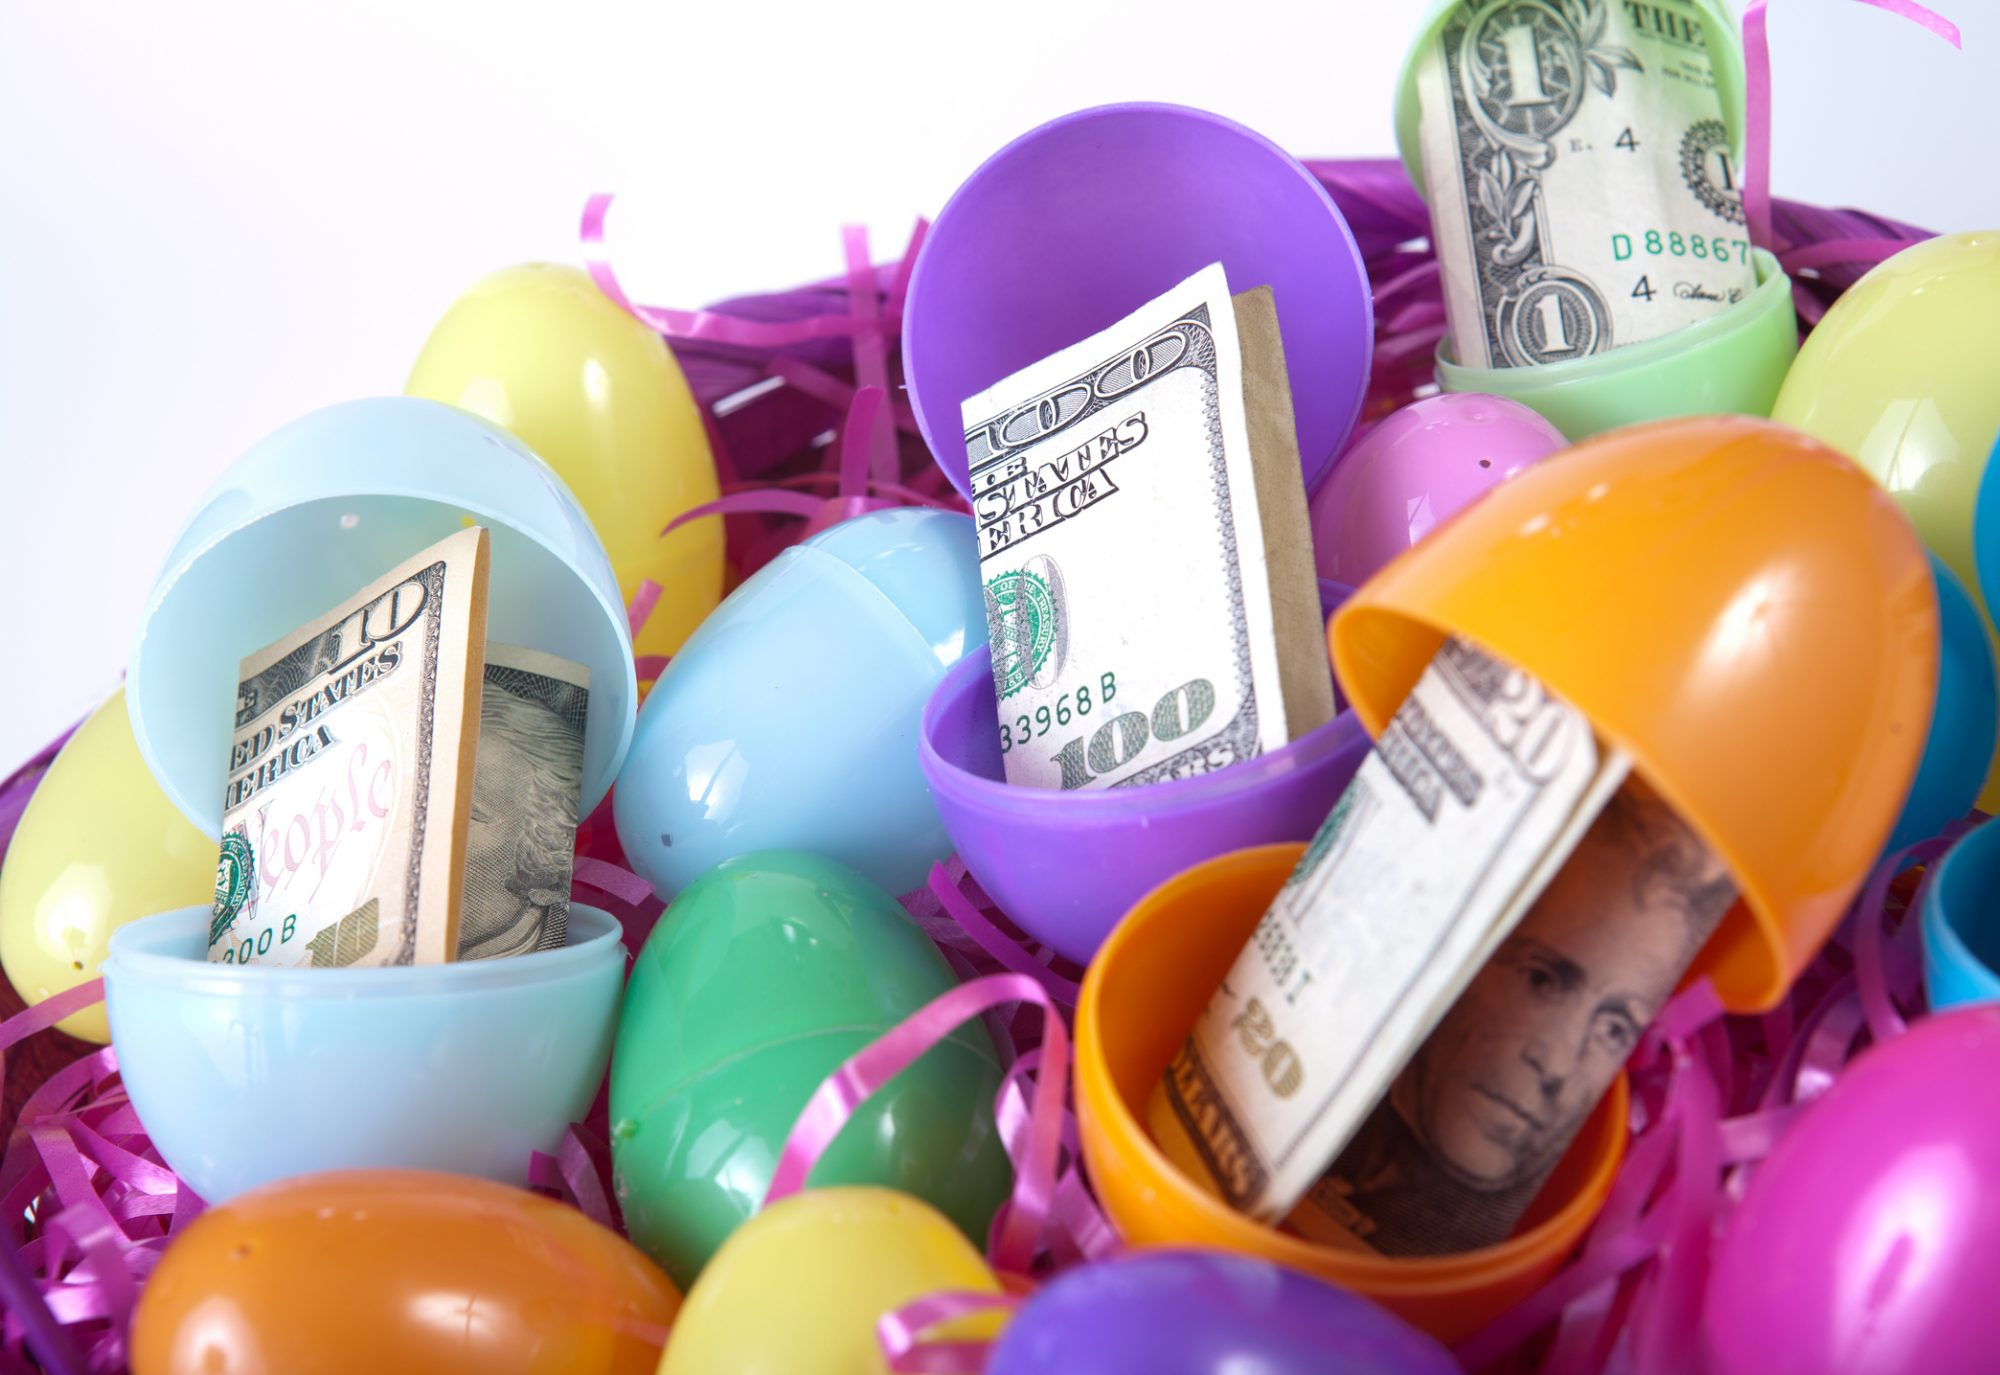 An Easter basket full of eggs with paper money on white background. Focus on the $100 bill in the center.